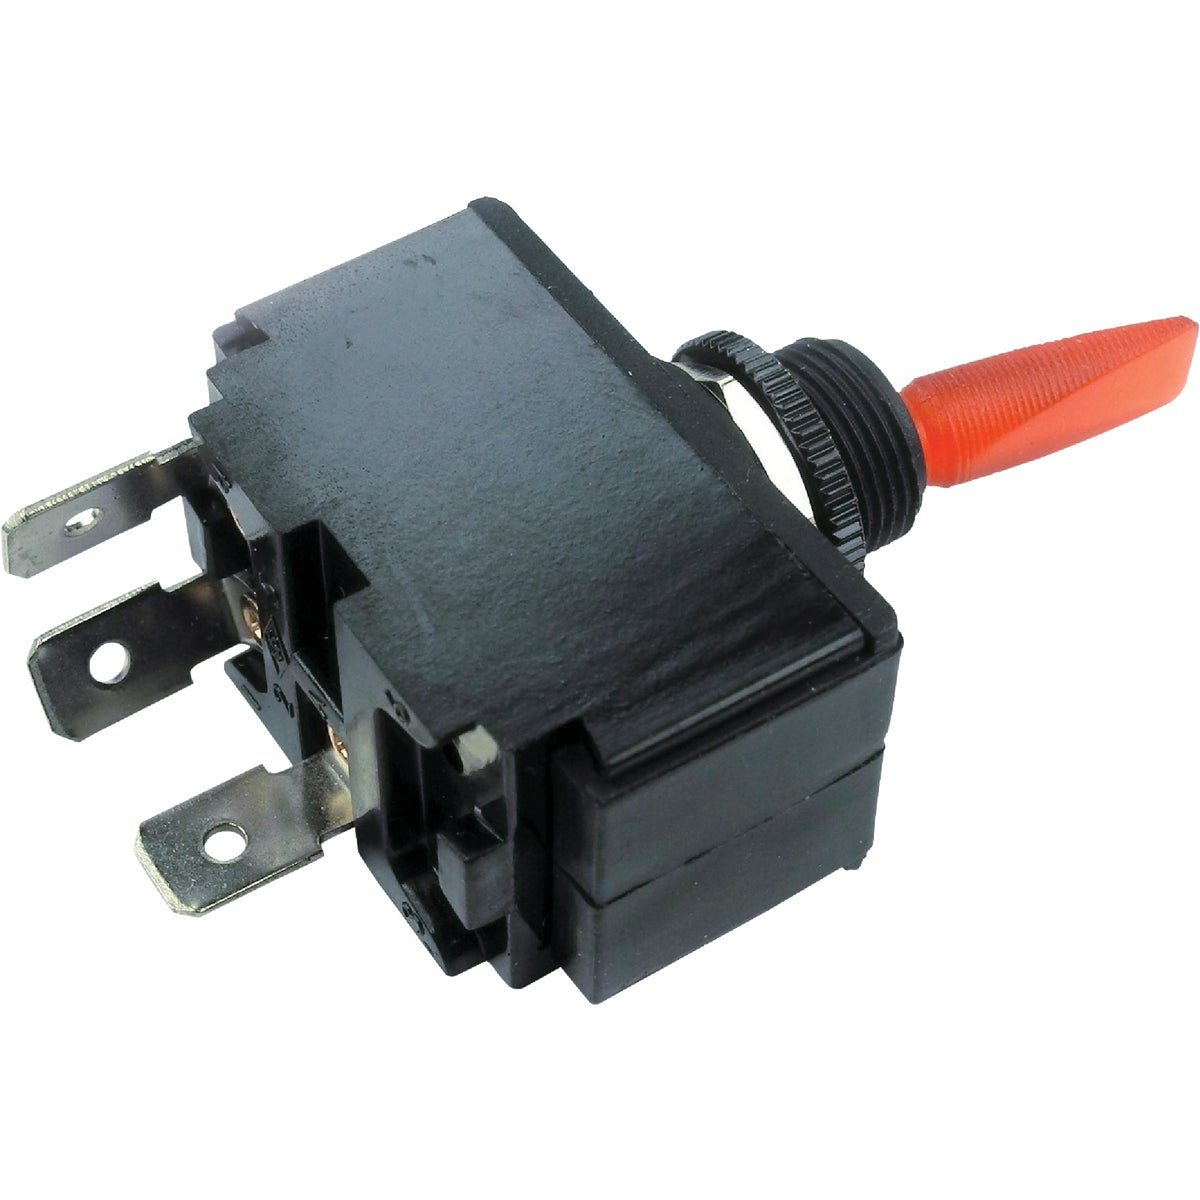 OFF/ON TOGGLE SWITCH